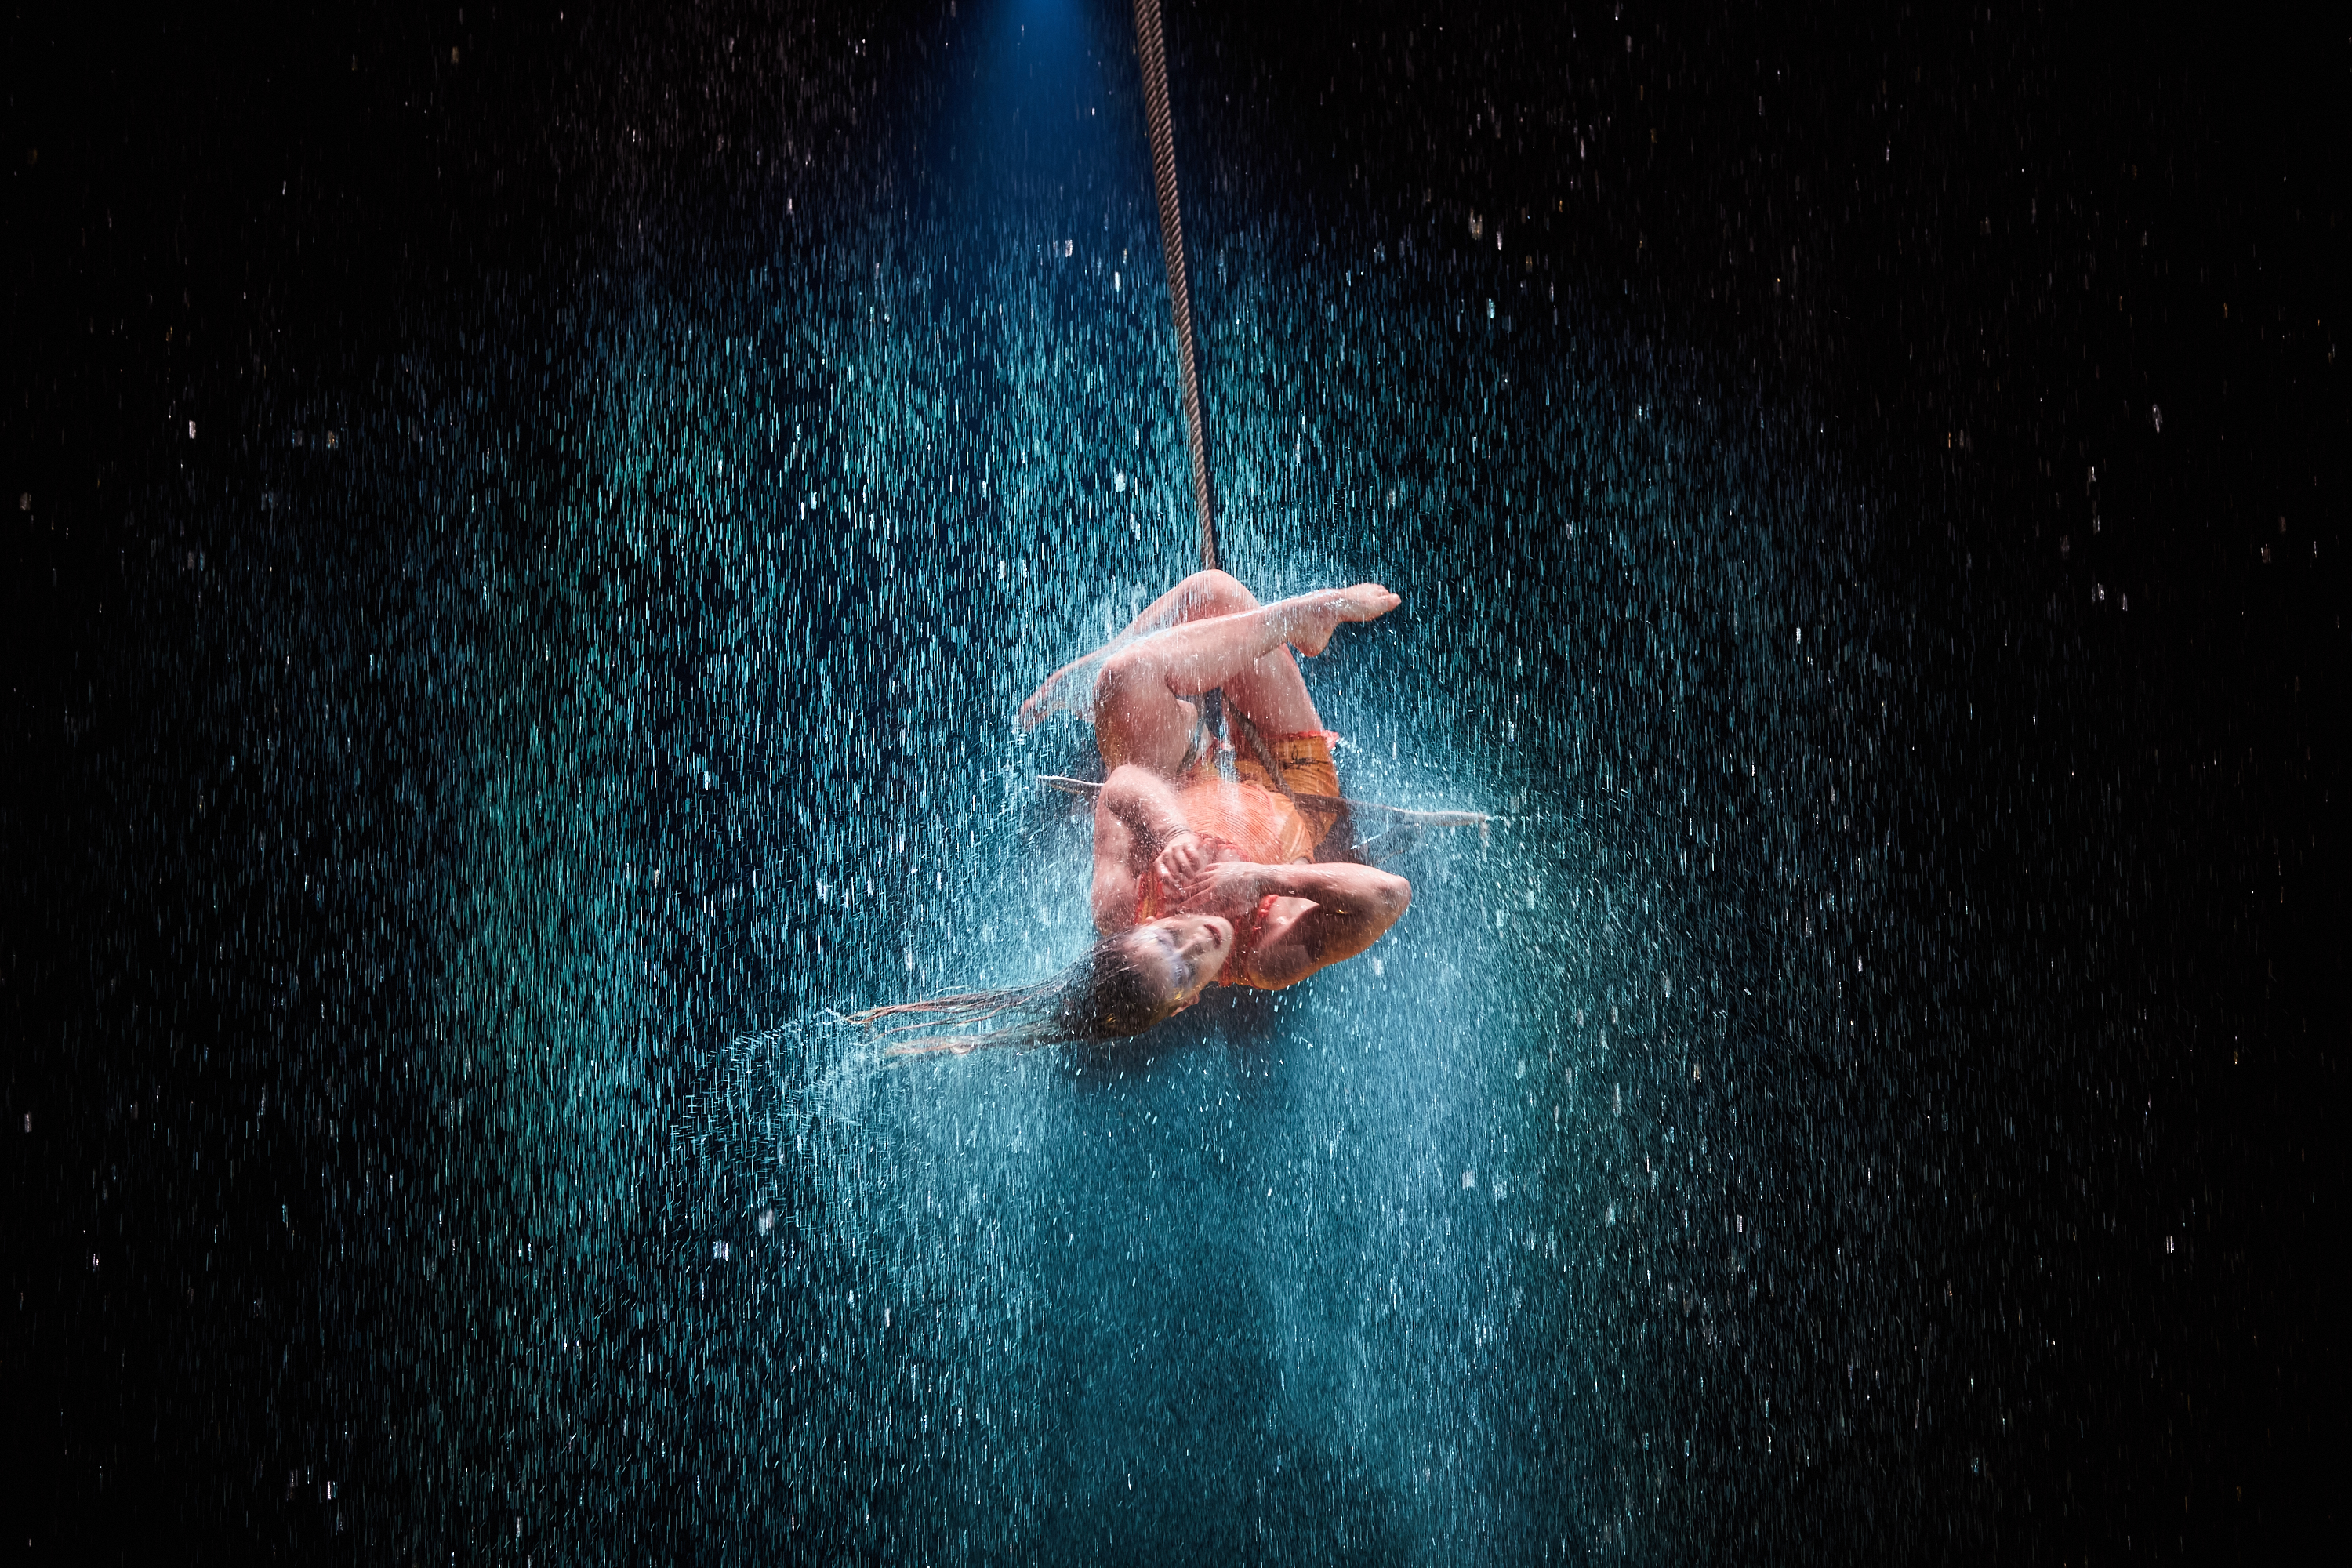 What Cirque du Soleil can tell us about the neuroscience of awe